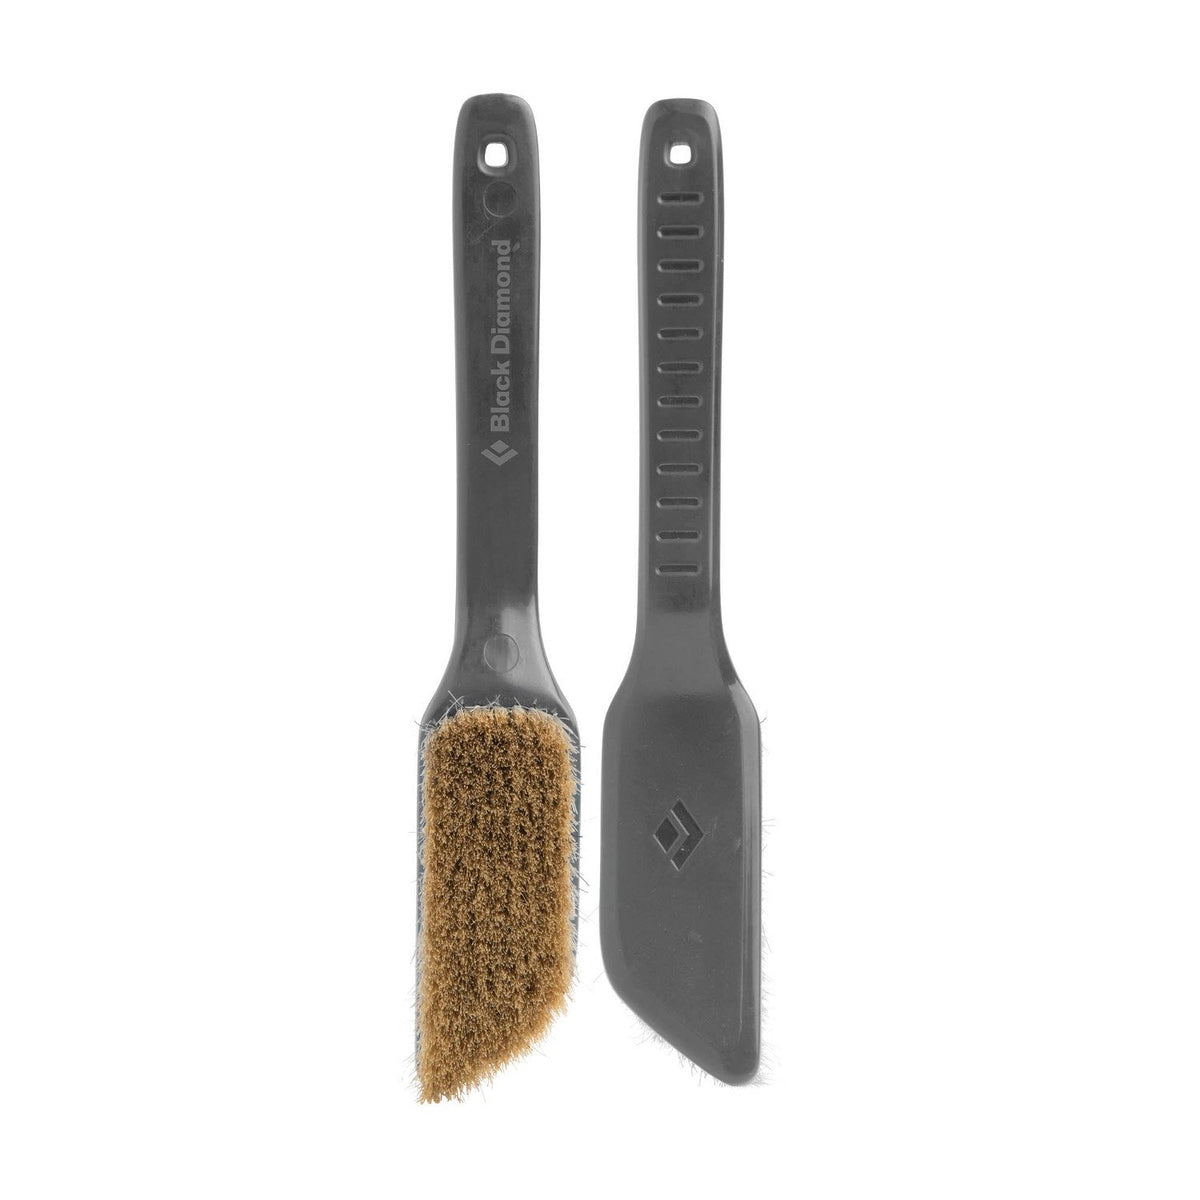 Pair of grey Black Diamond Boars Hair Brushes - Medium, 1 shown facing and 1 shown in the reverse